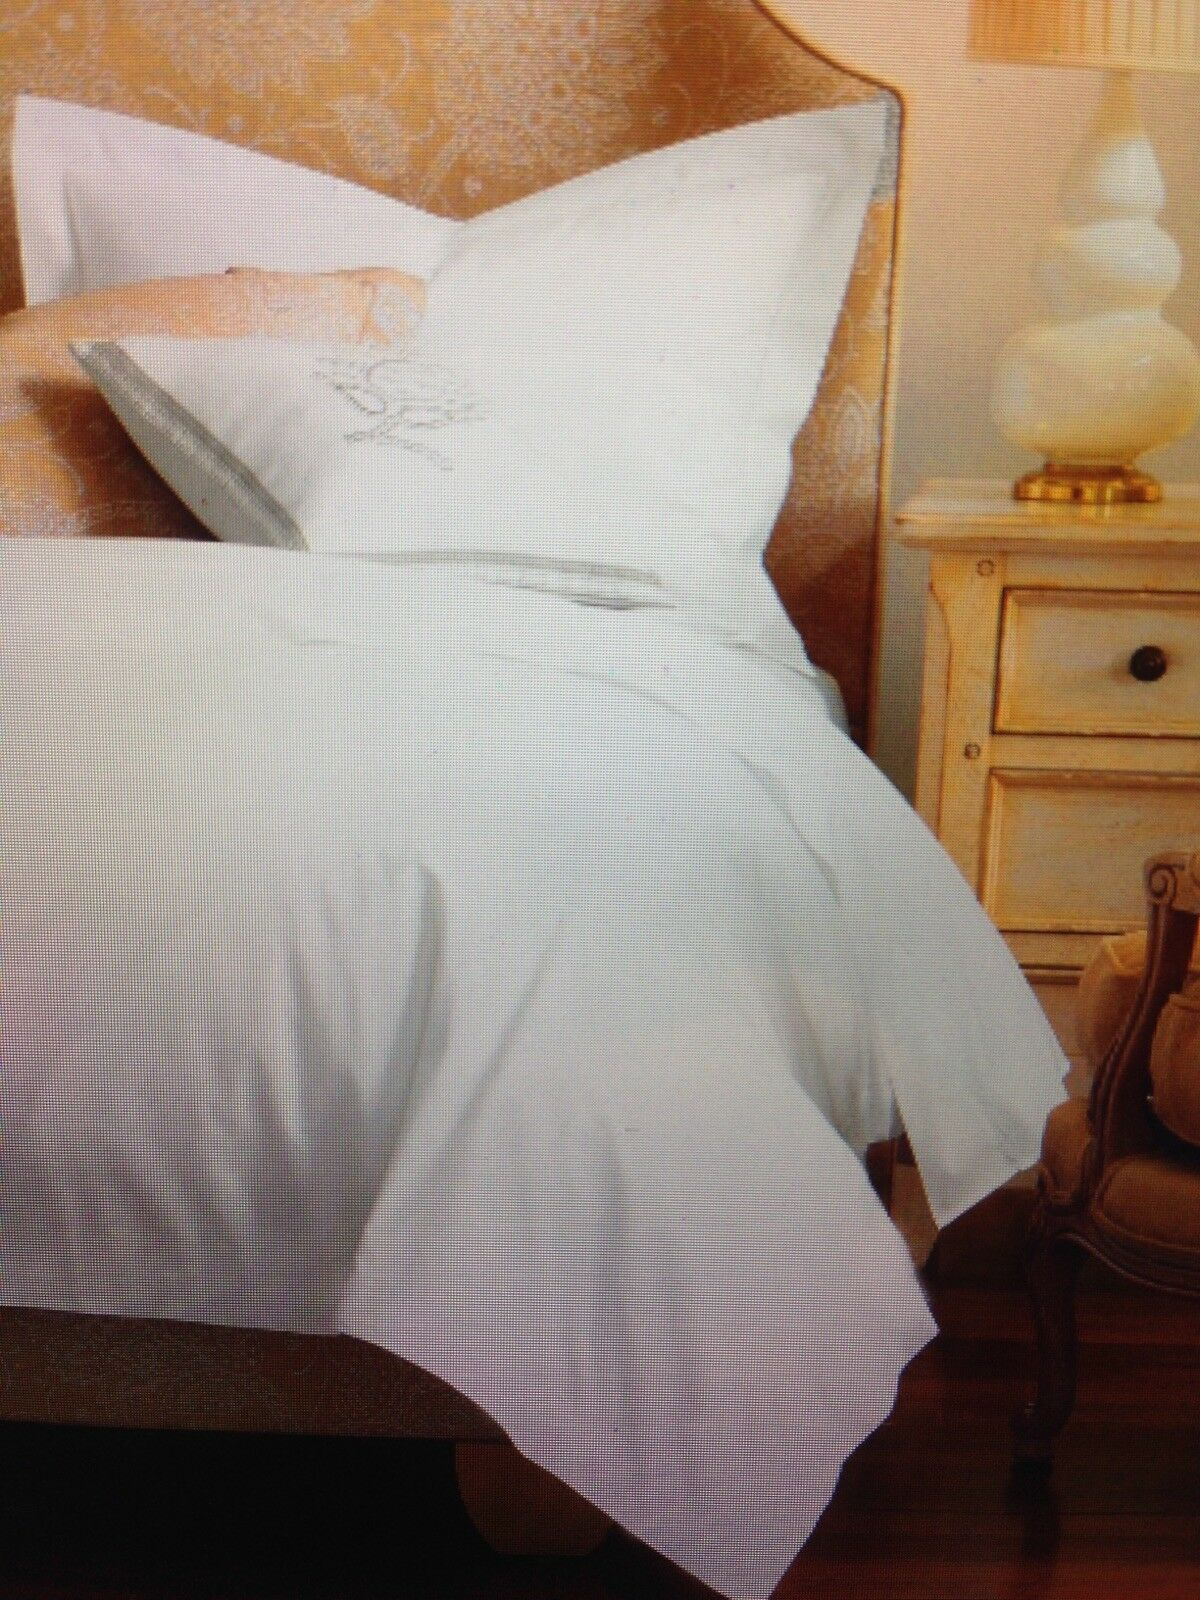 Twin Size Duvet Cover, White, 100% certified organic cotton, FREE SHIPPING